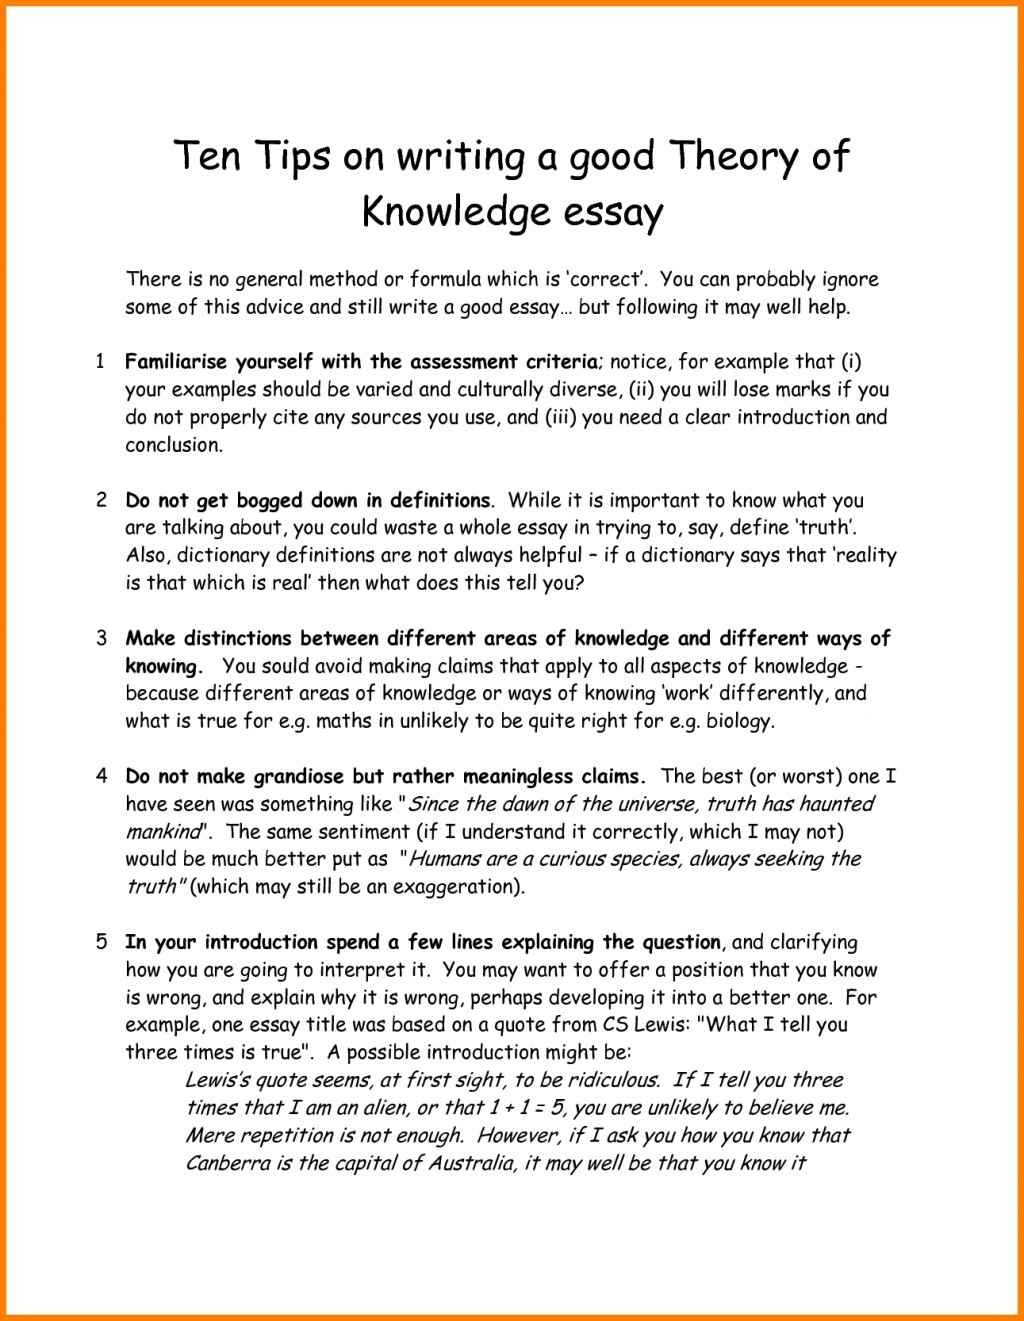 001 Essay Example Good Ways To Start English The Paragraph How An Observation Examples Off About Yourself Ledger Pa Informative Writing Analysis Conclusion Academic Application Striking Way A Book Racism Different Large